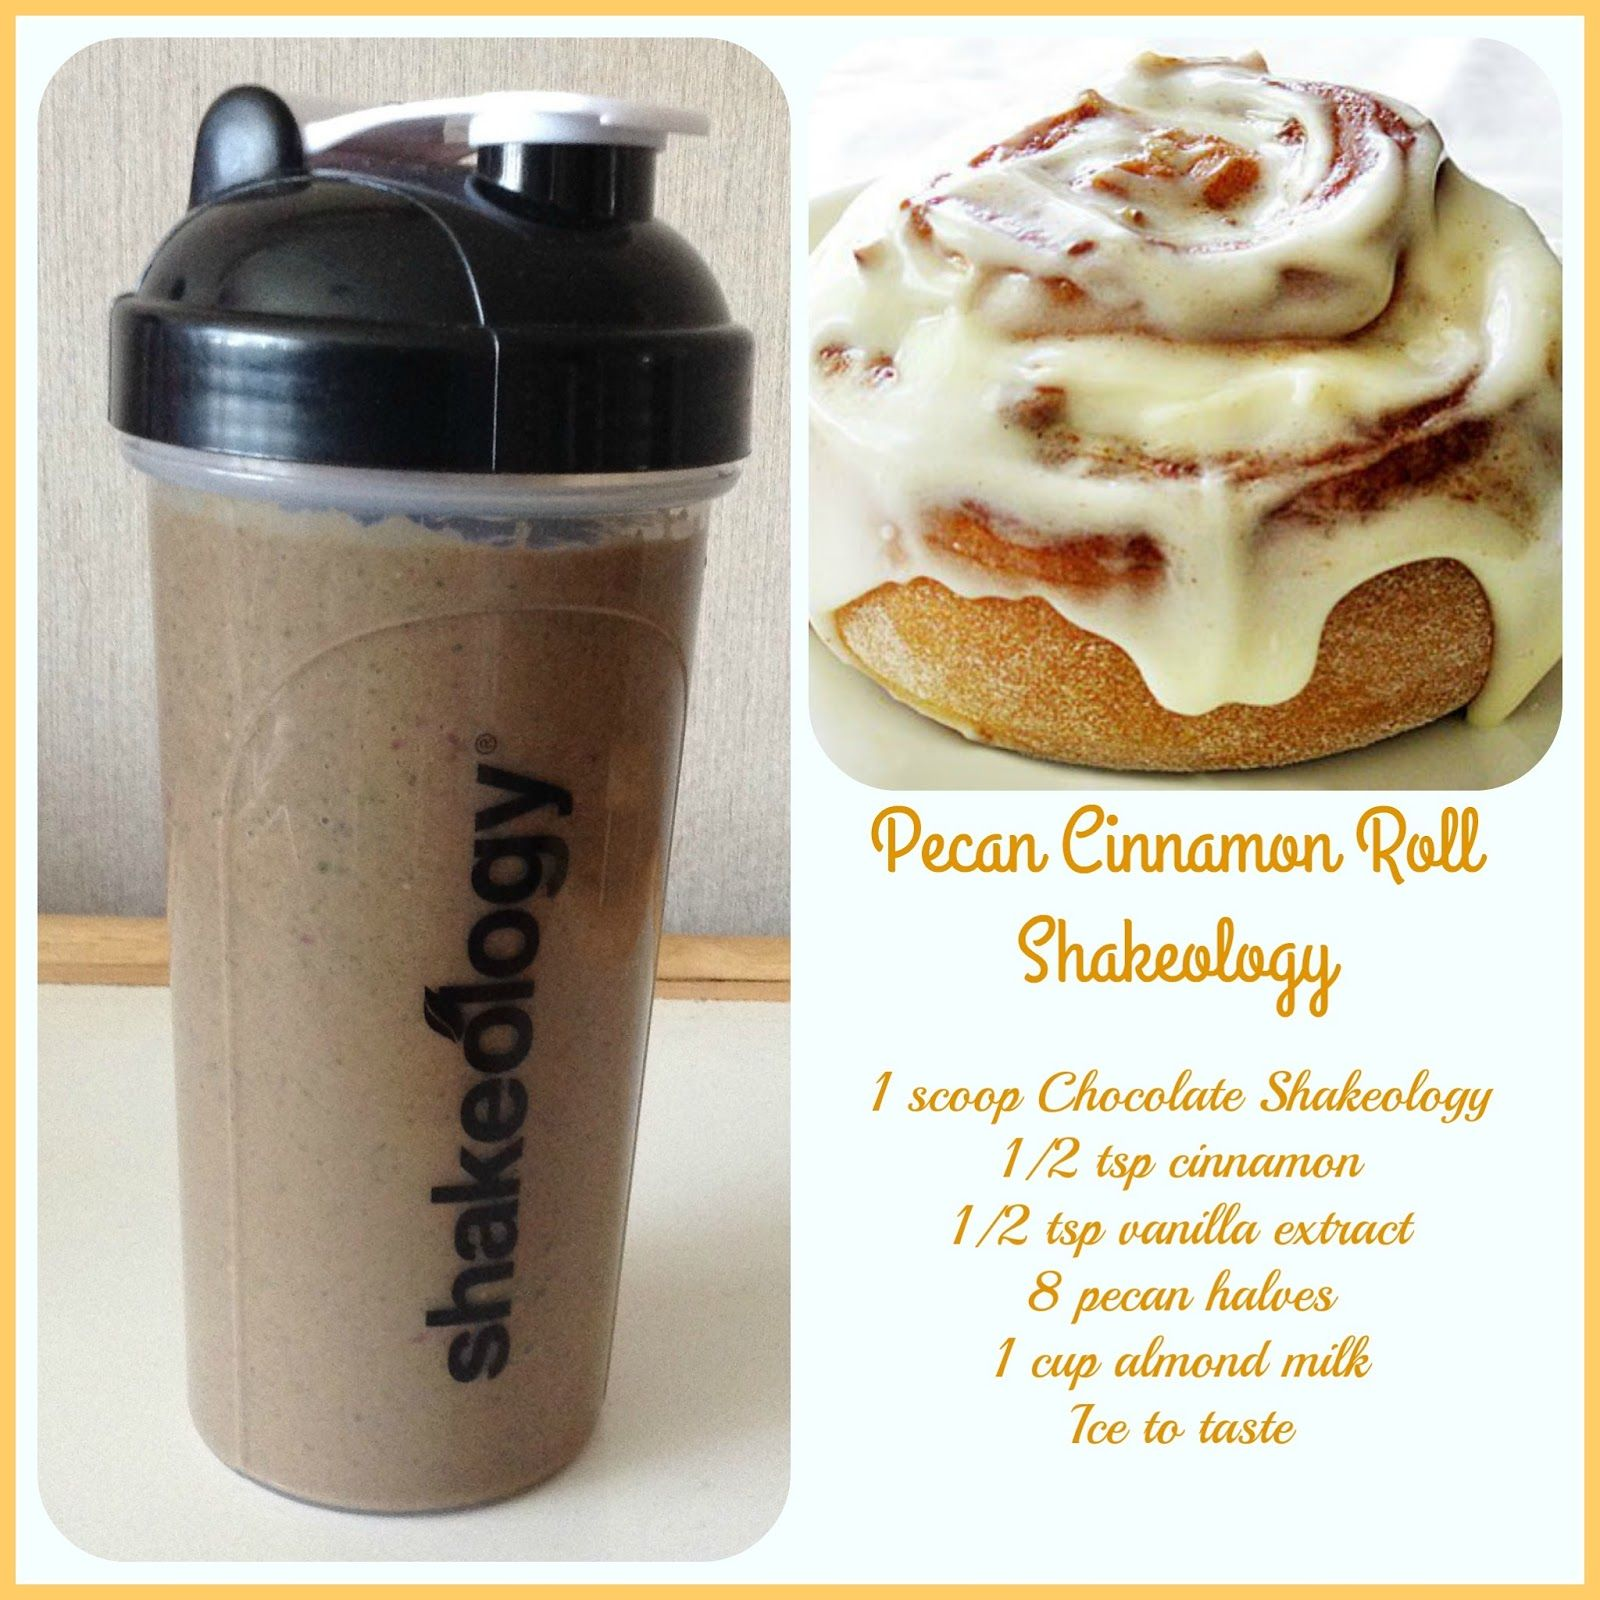 Pecan Cinnamon Roll Shakeology | 21 day fix | Pinterest ...